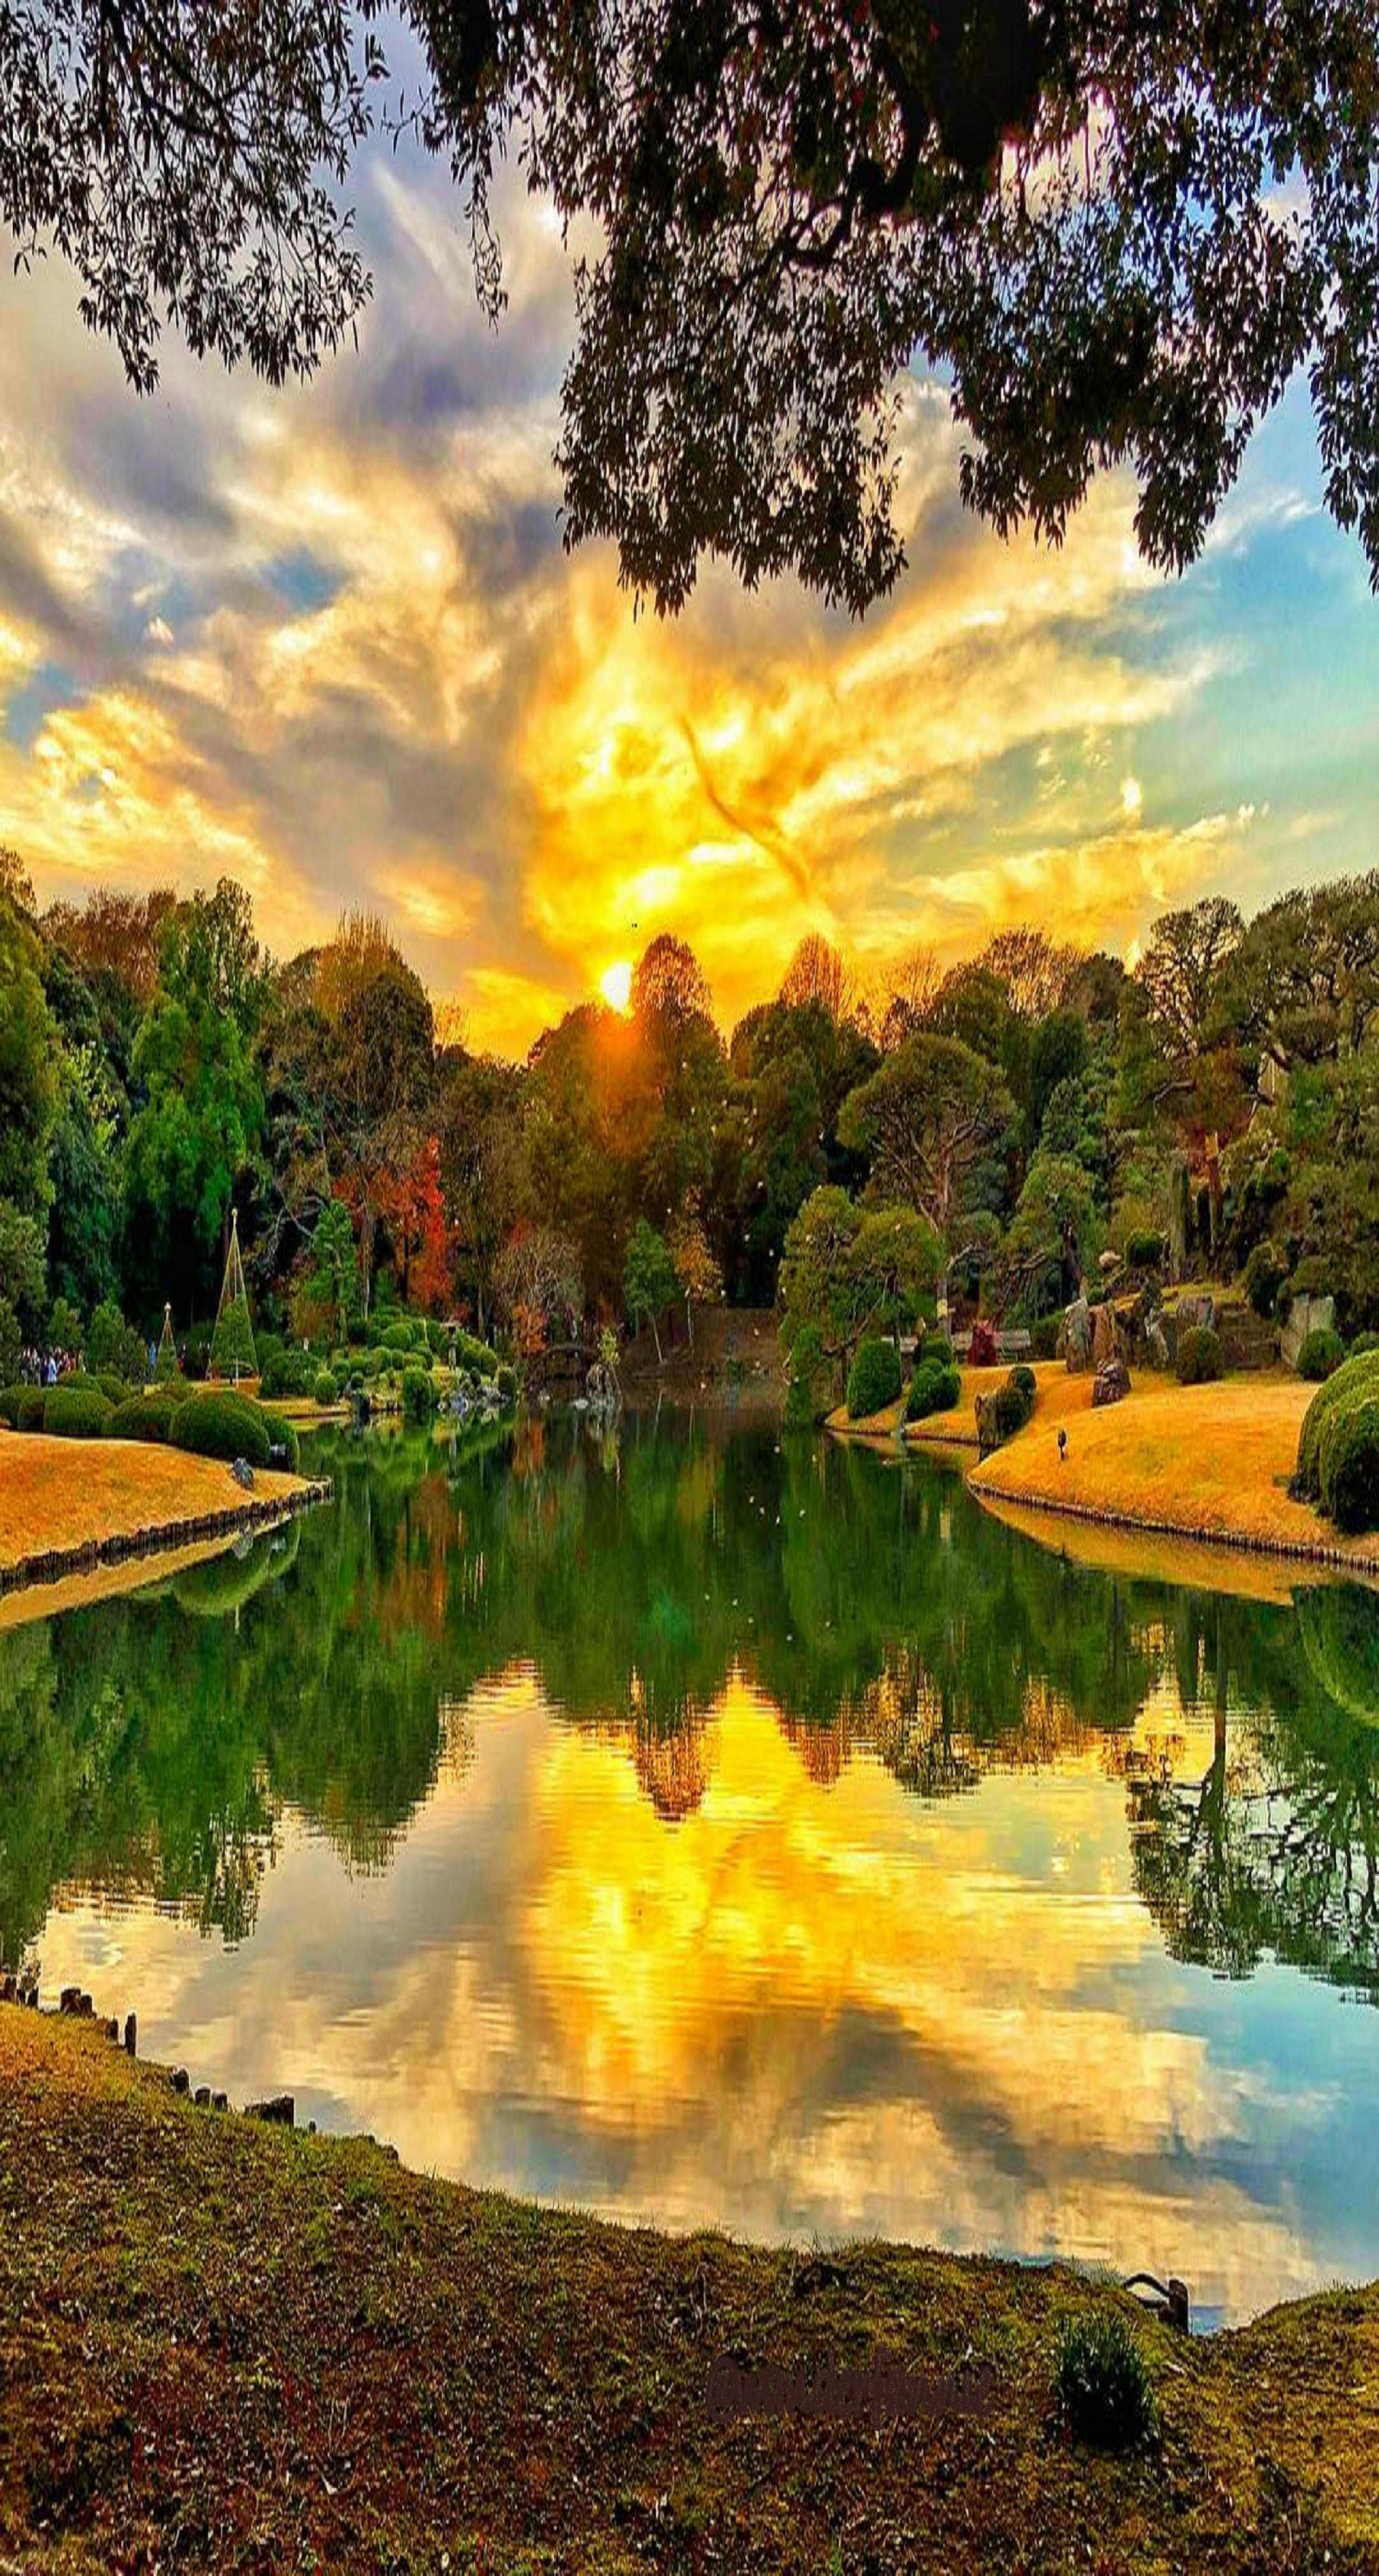 What A Beautiful Landscape Nature Pictures Beautiful Nature Beautiful Landscapes